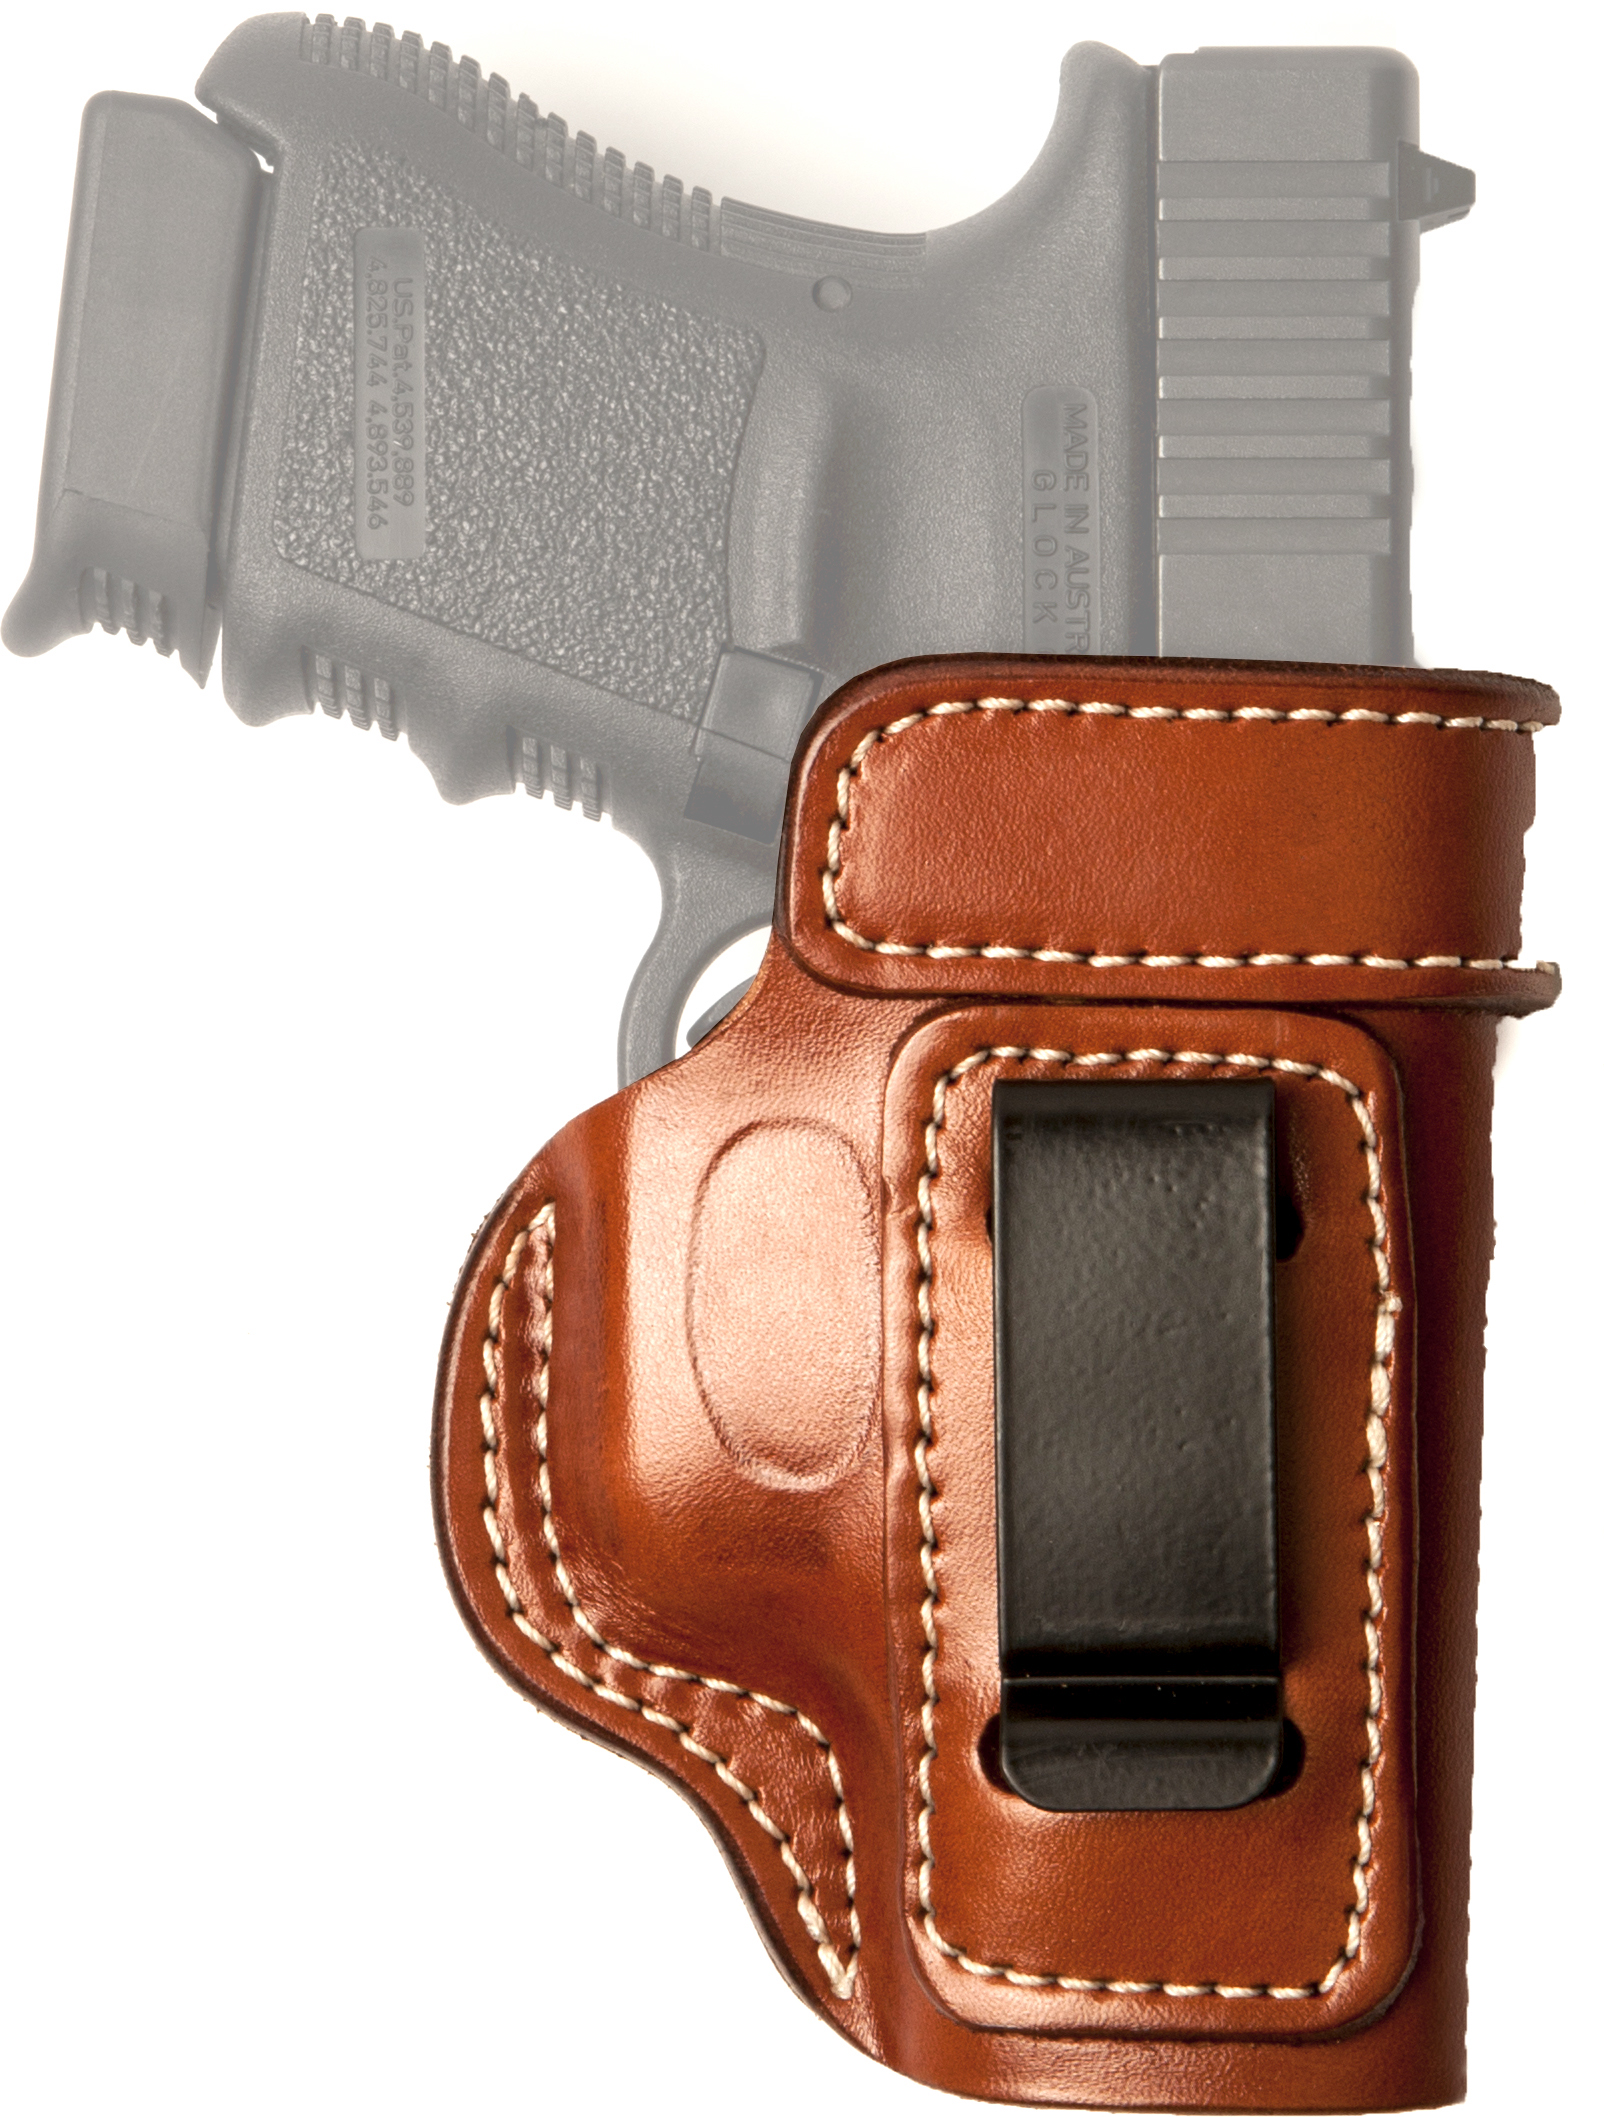 Cebeci Arms Leather IWB Holster Reinforced Mouth 20799